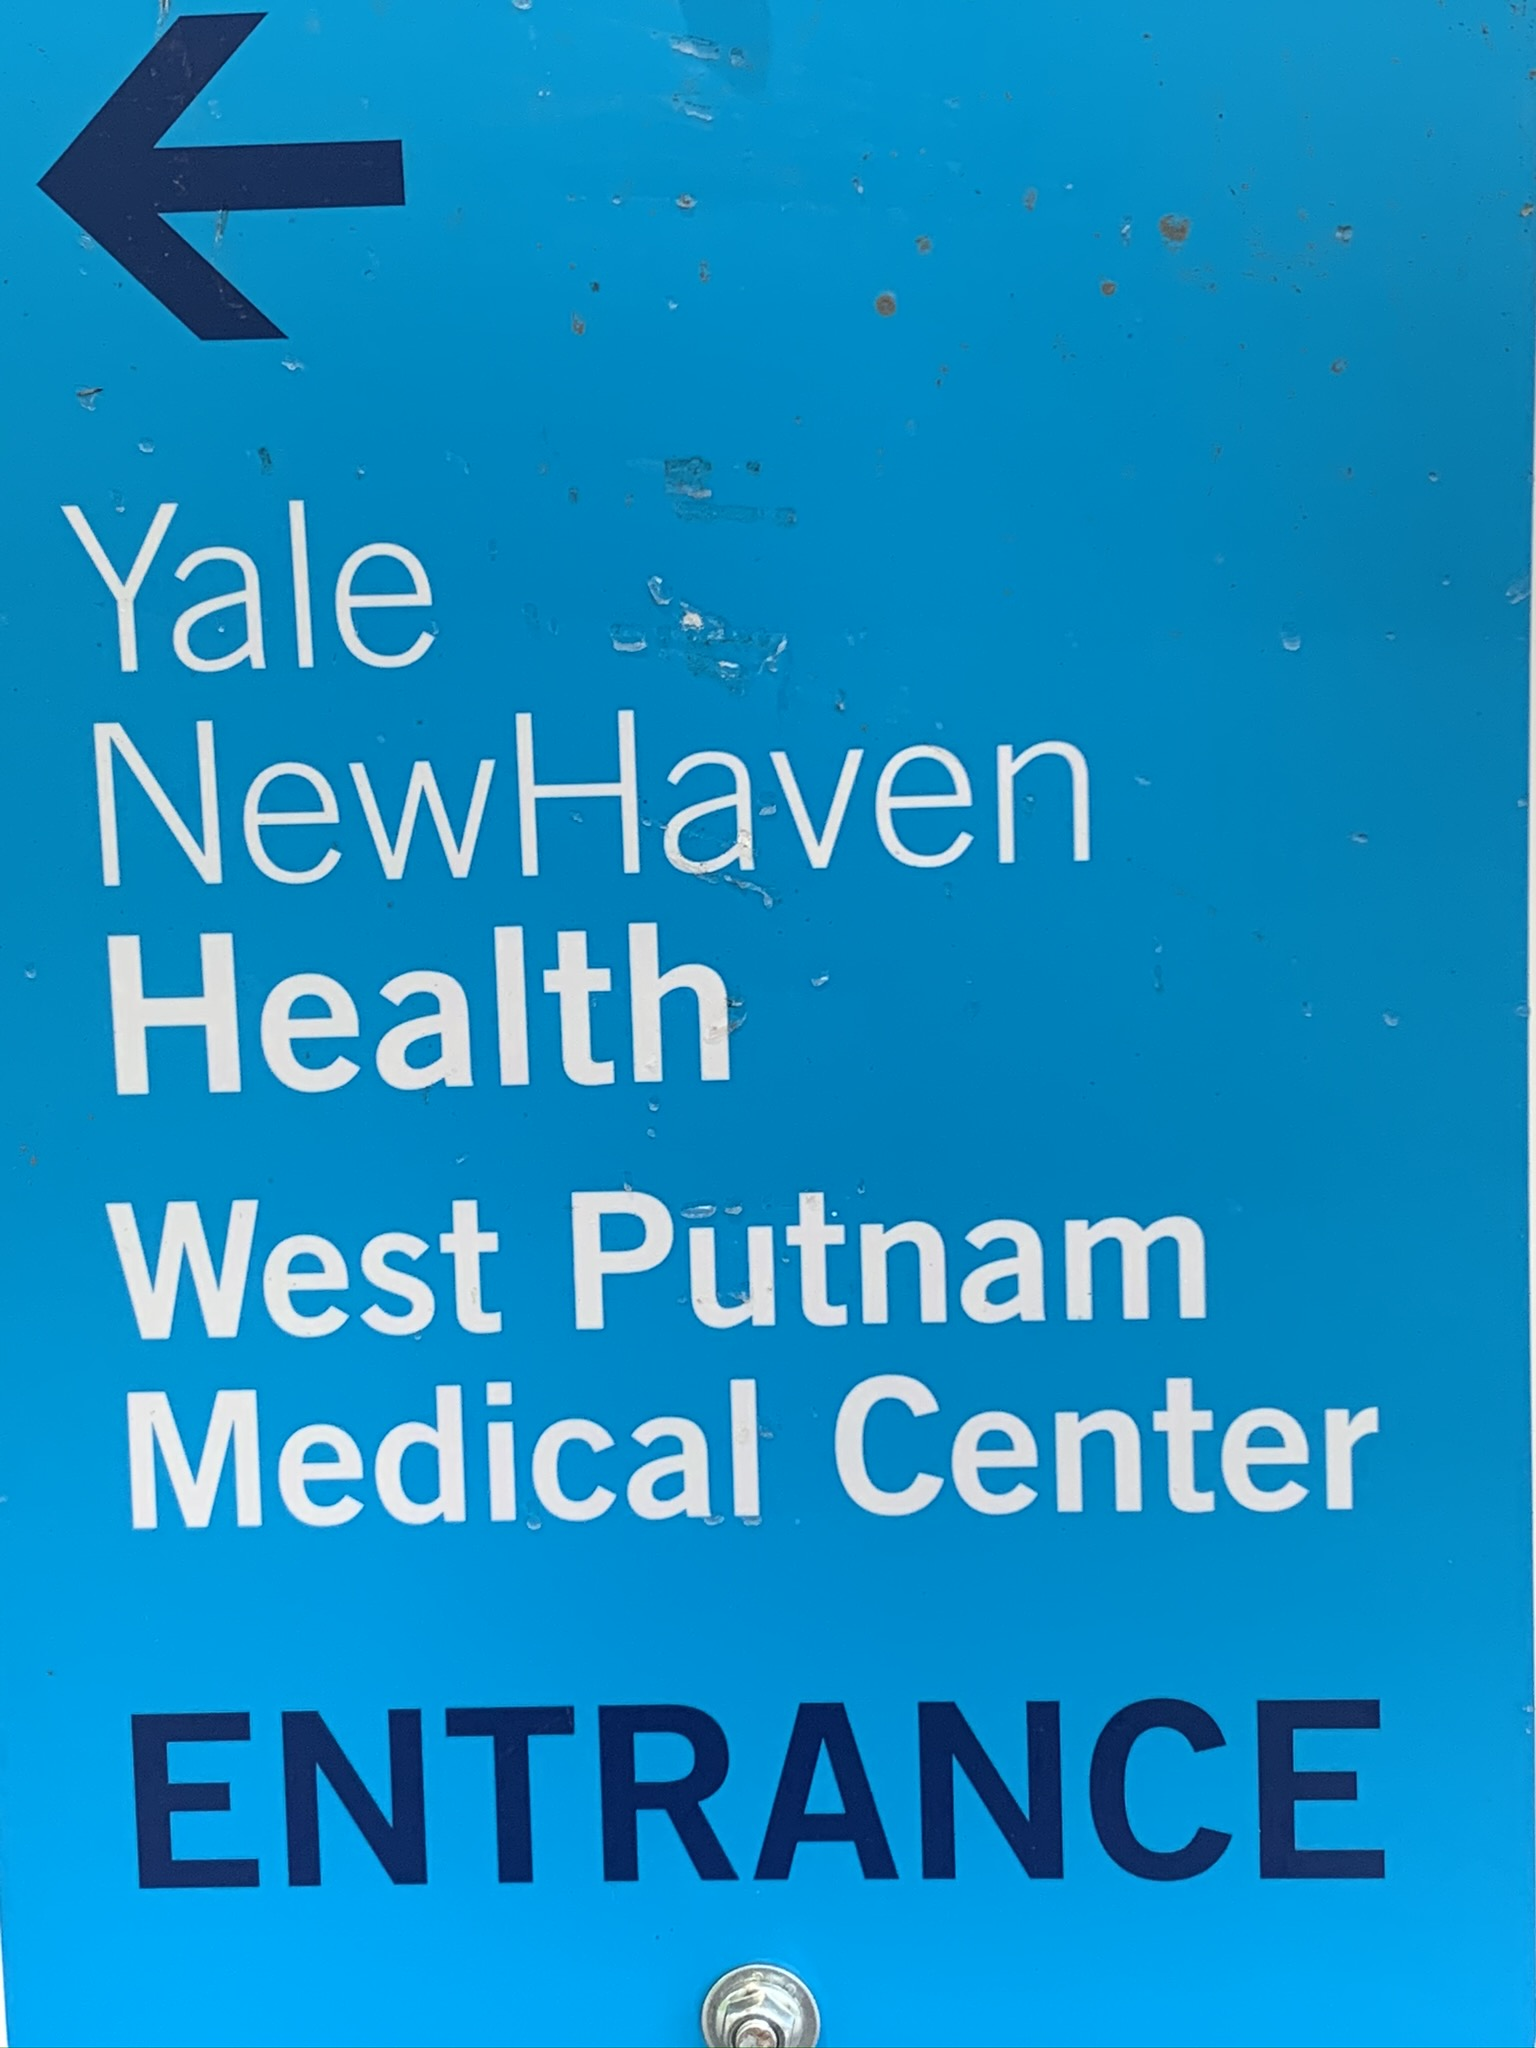 yale-new-haven-med-center-img-IMG_1164